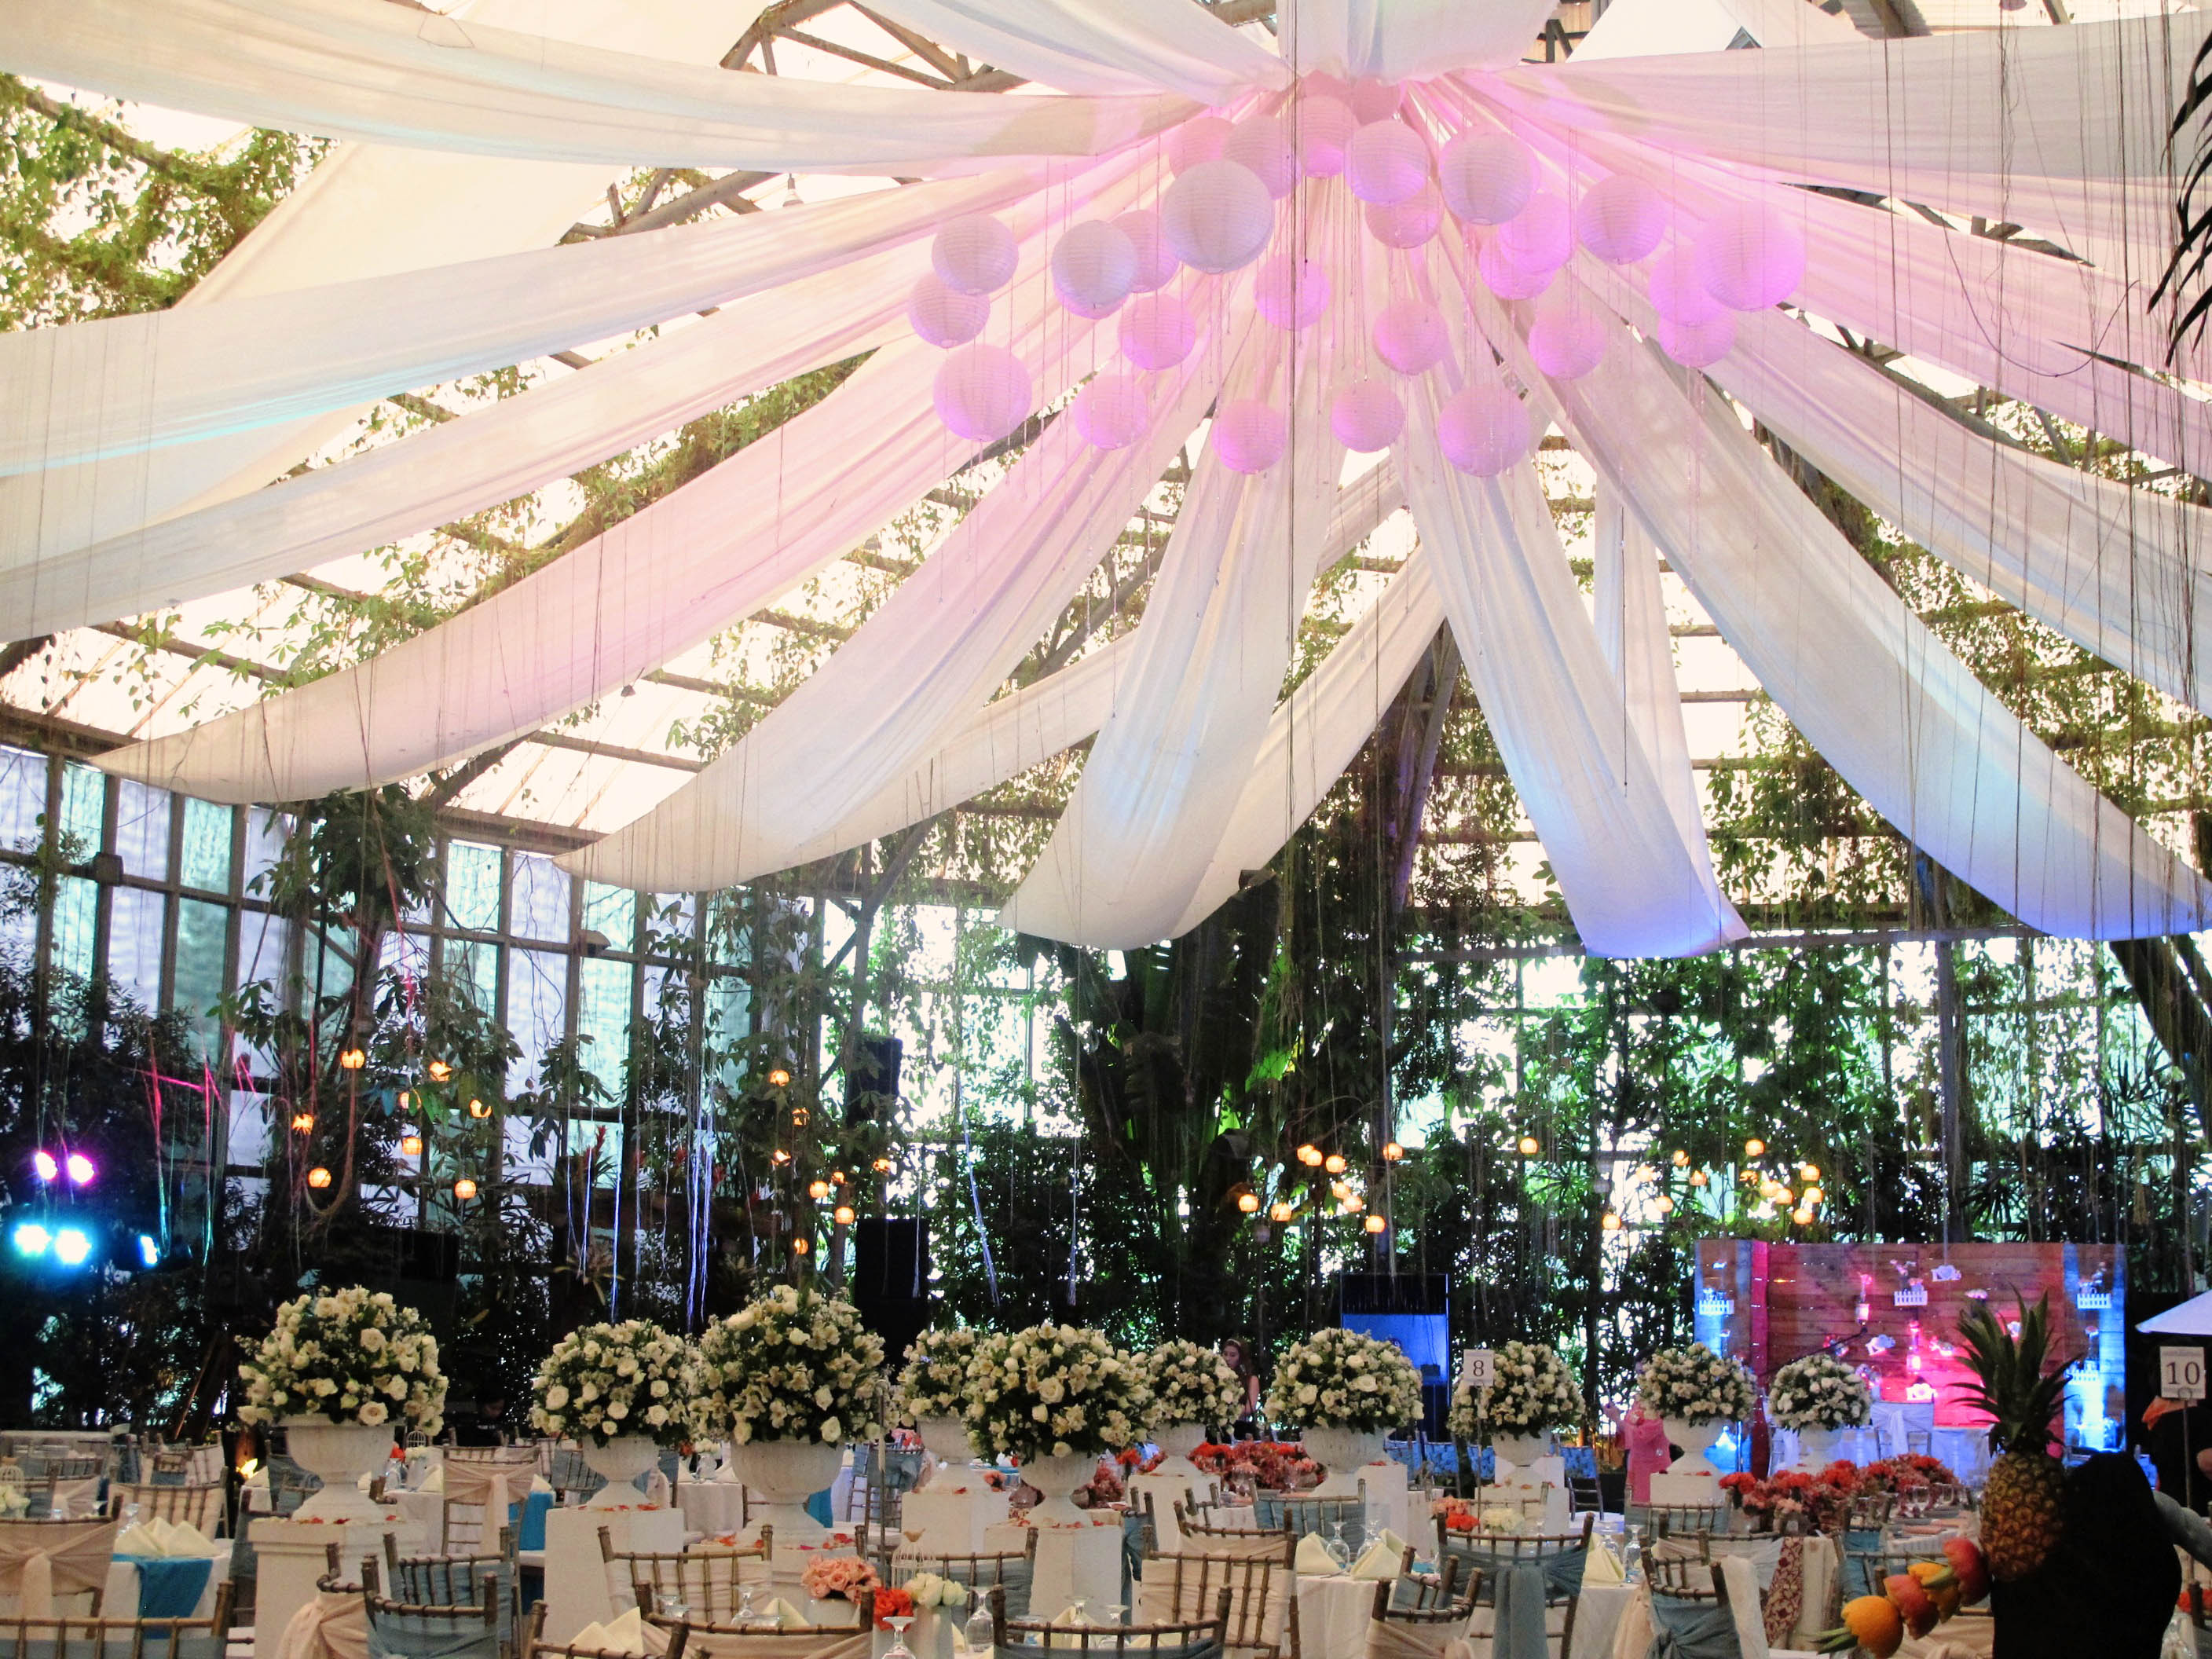 glass garden events venue wedding - Glass Garden